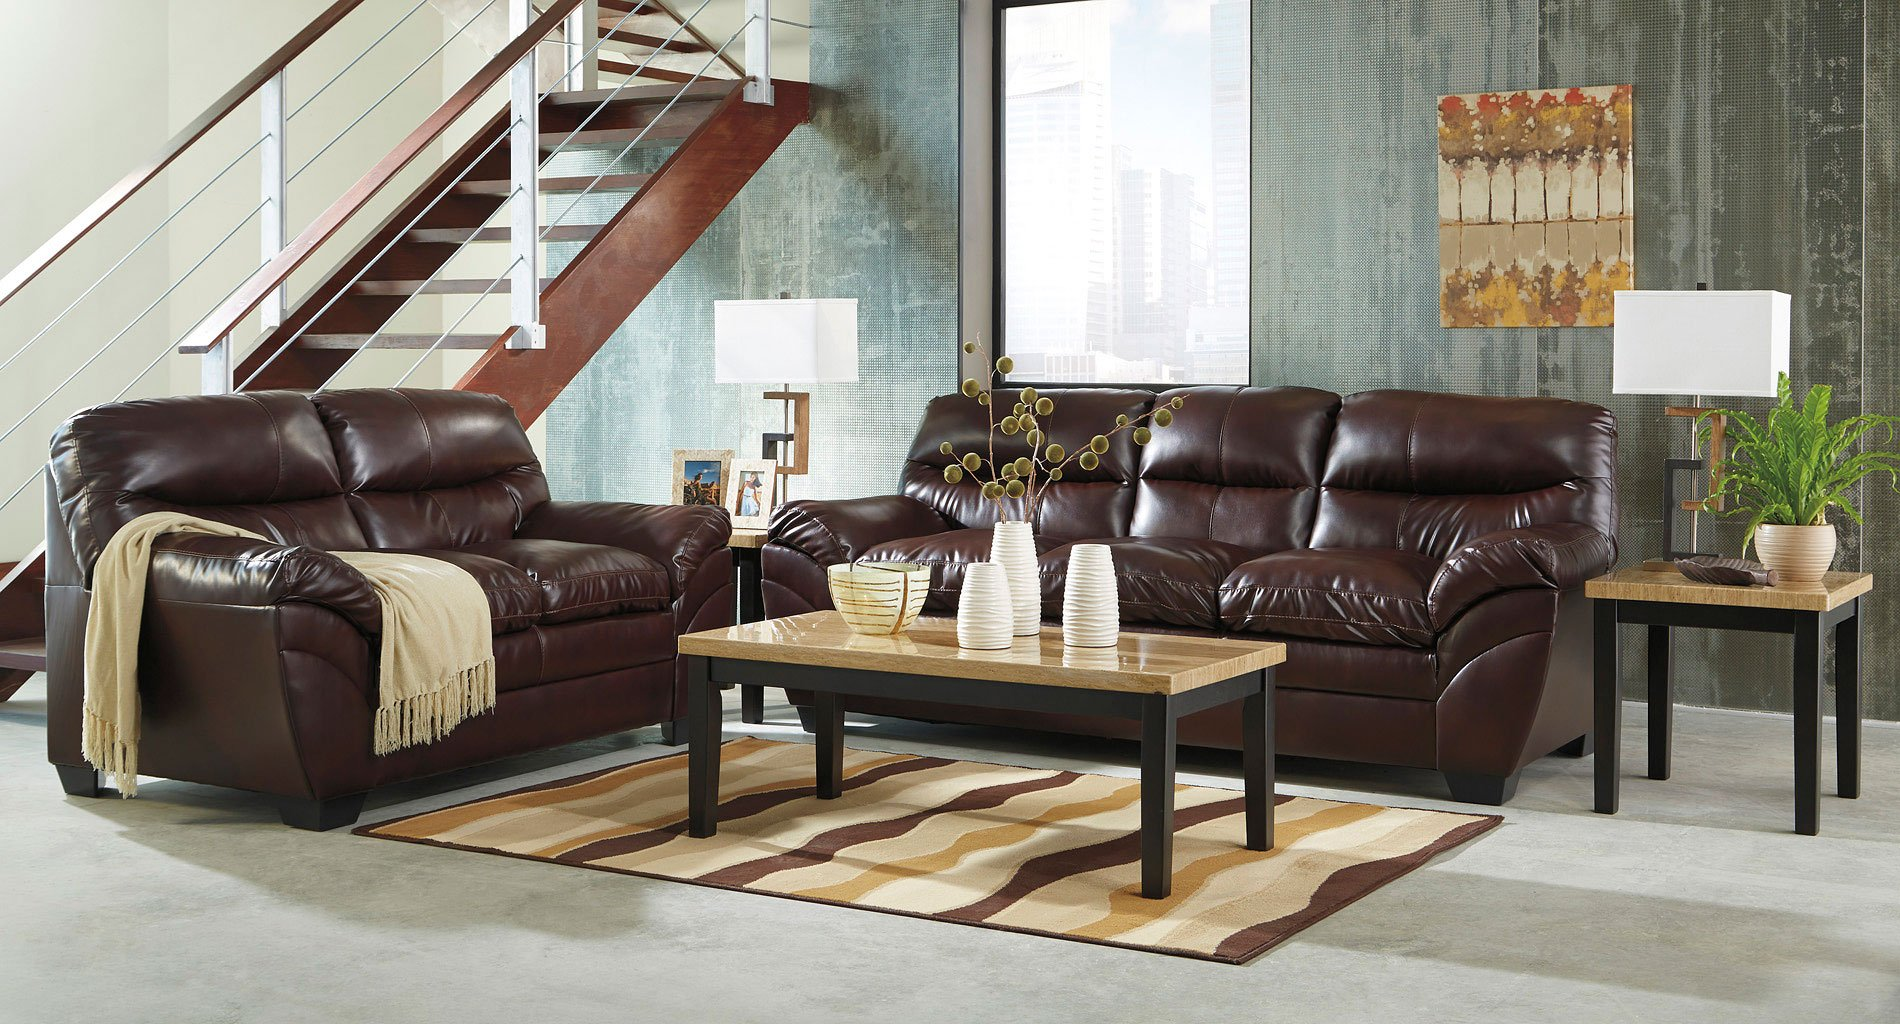 Tassler durablend mahogany living room set